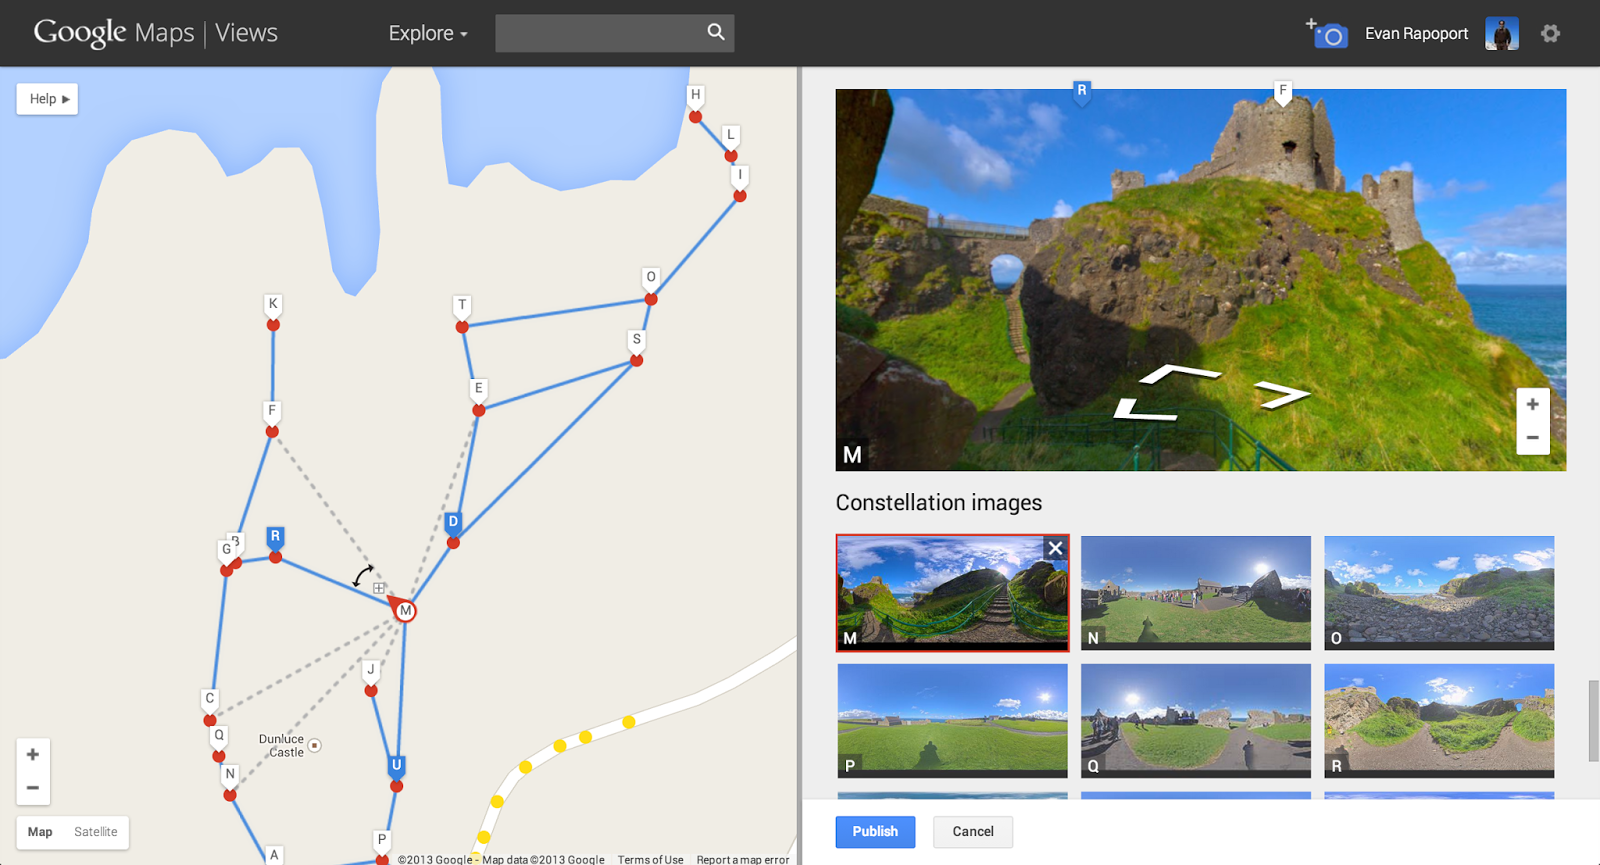 Google Us Creates Our Own Street View with Our Photo Spheres